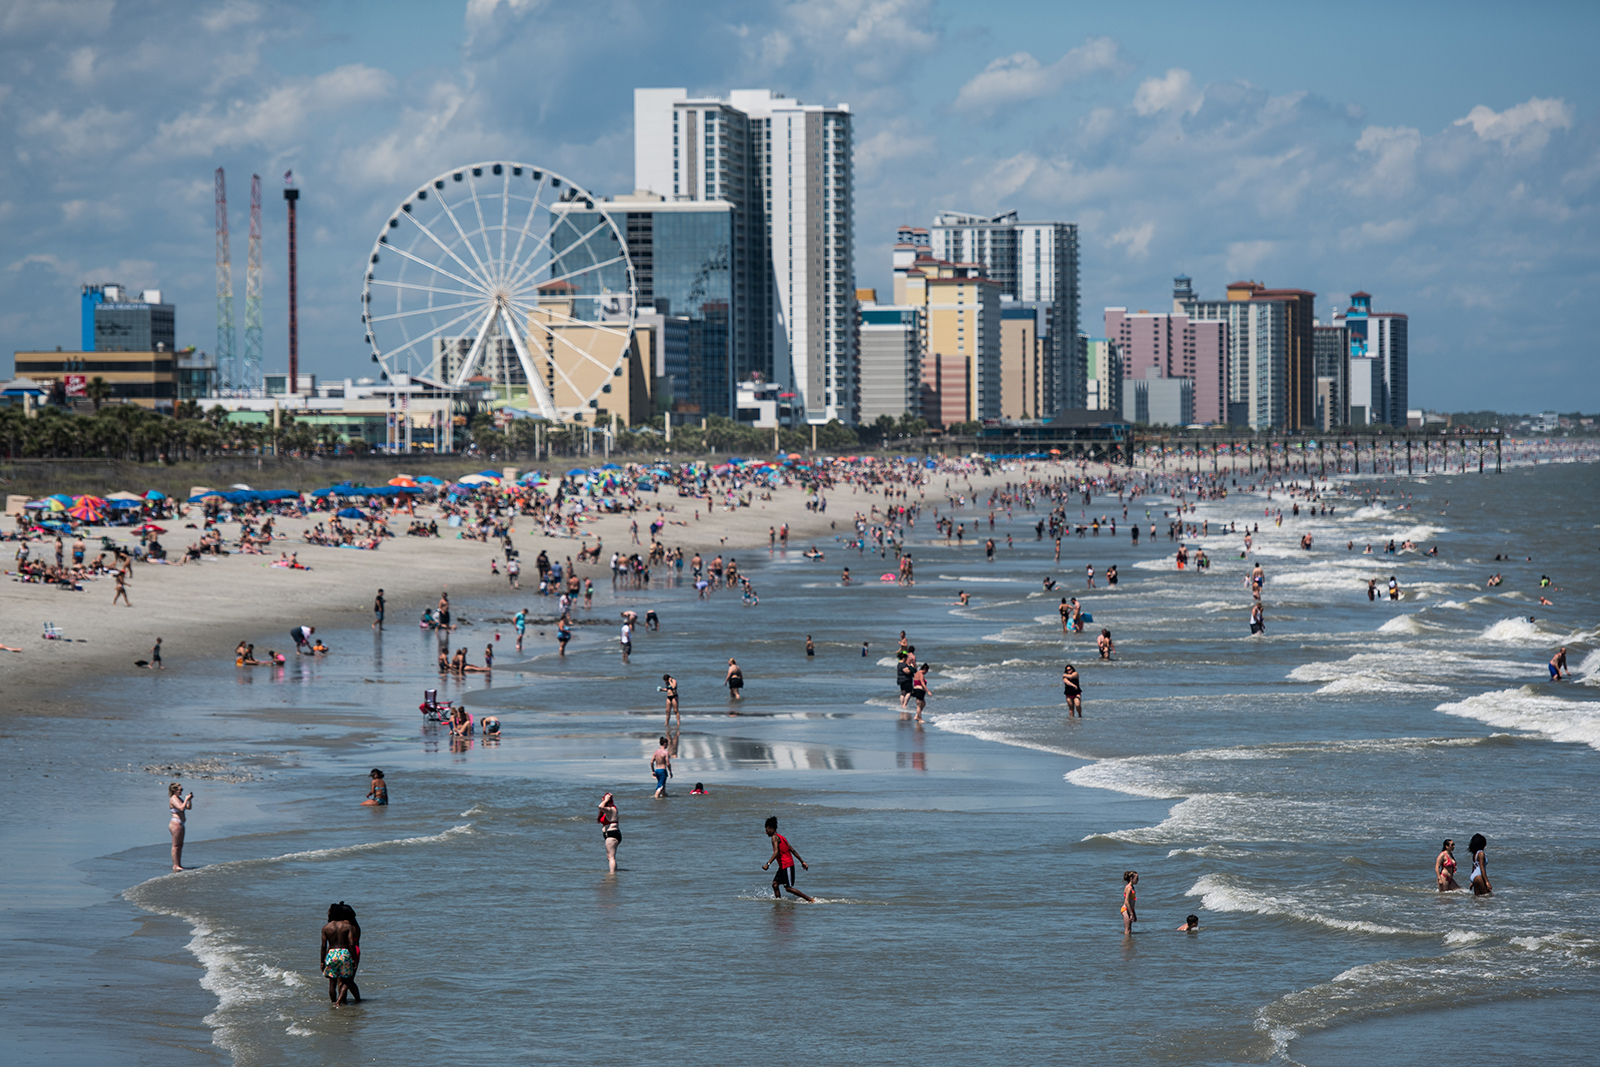 People wade in the surf in Myrtle Beach, South Carolina, on May 23.